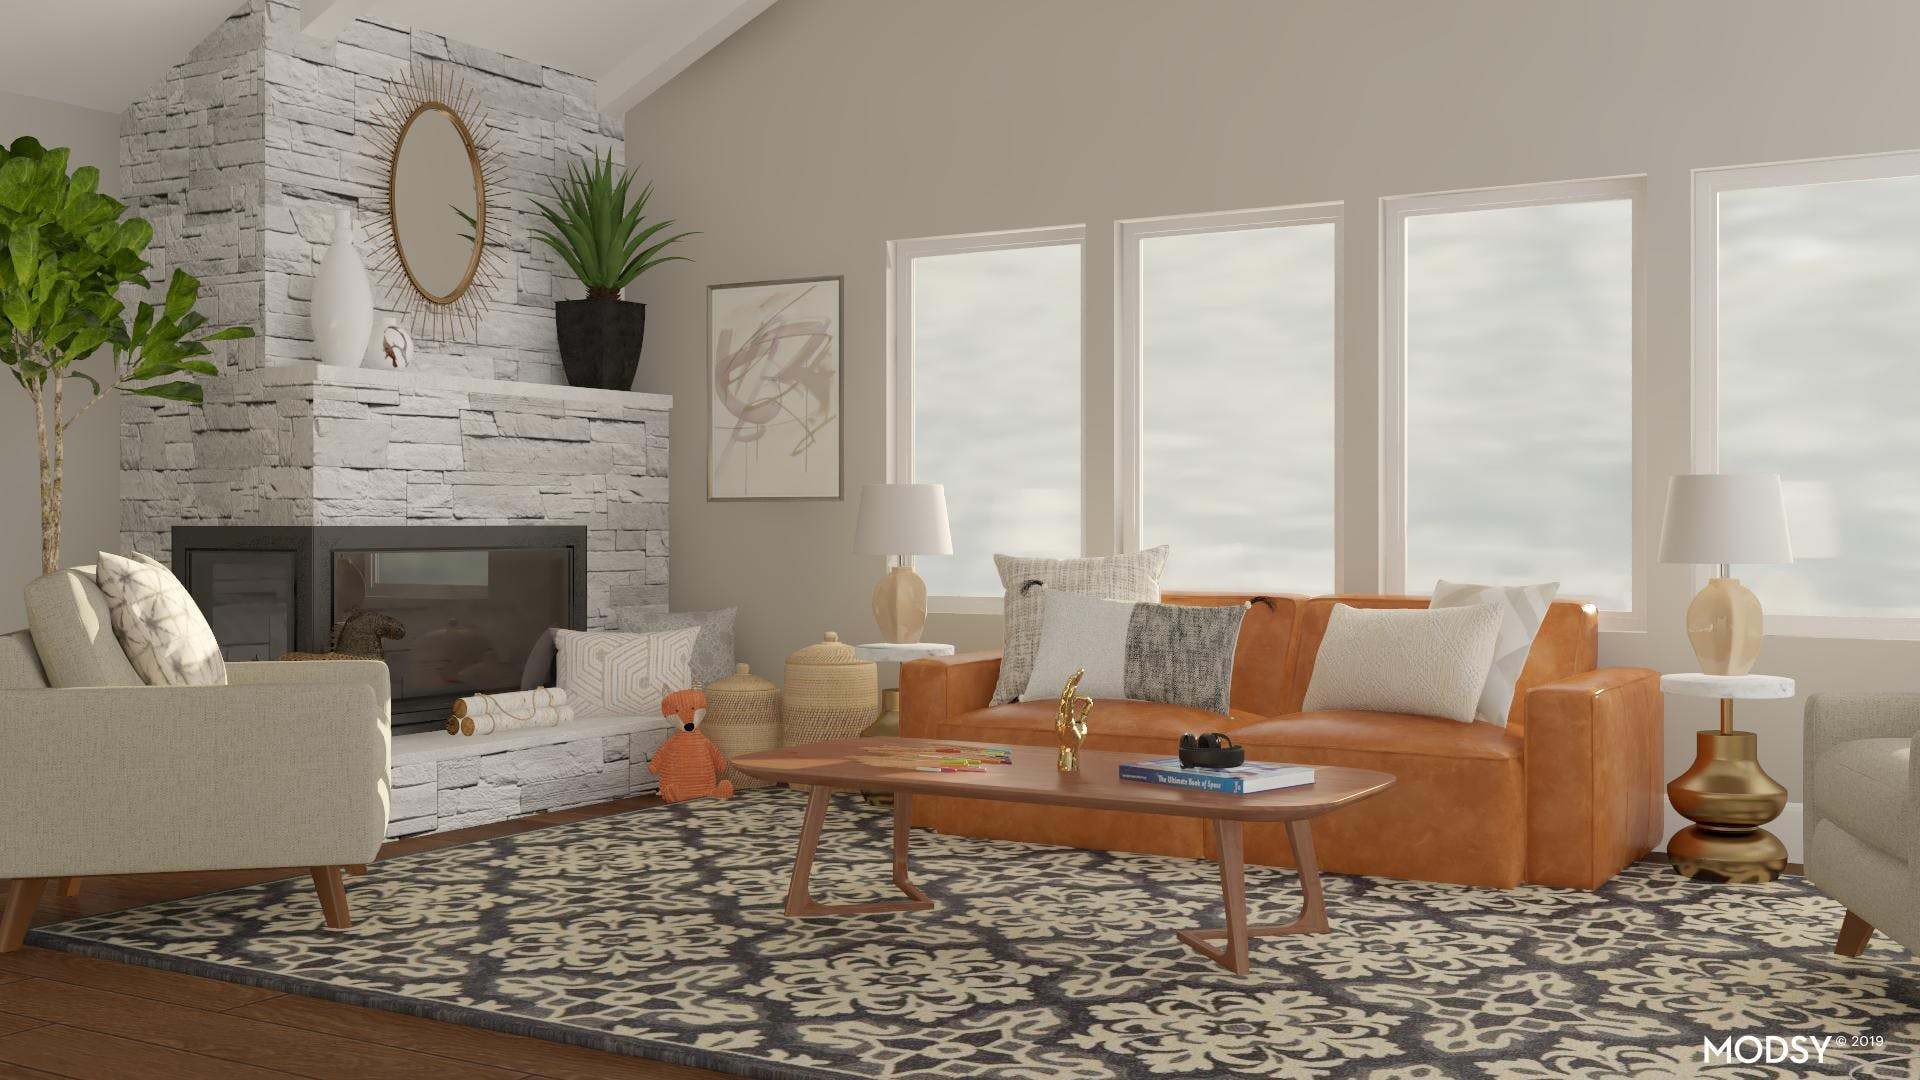 A Charming, Casual Living Room